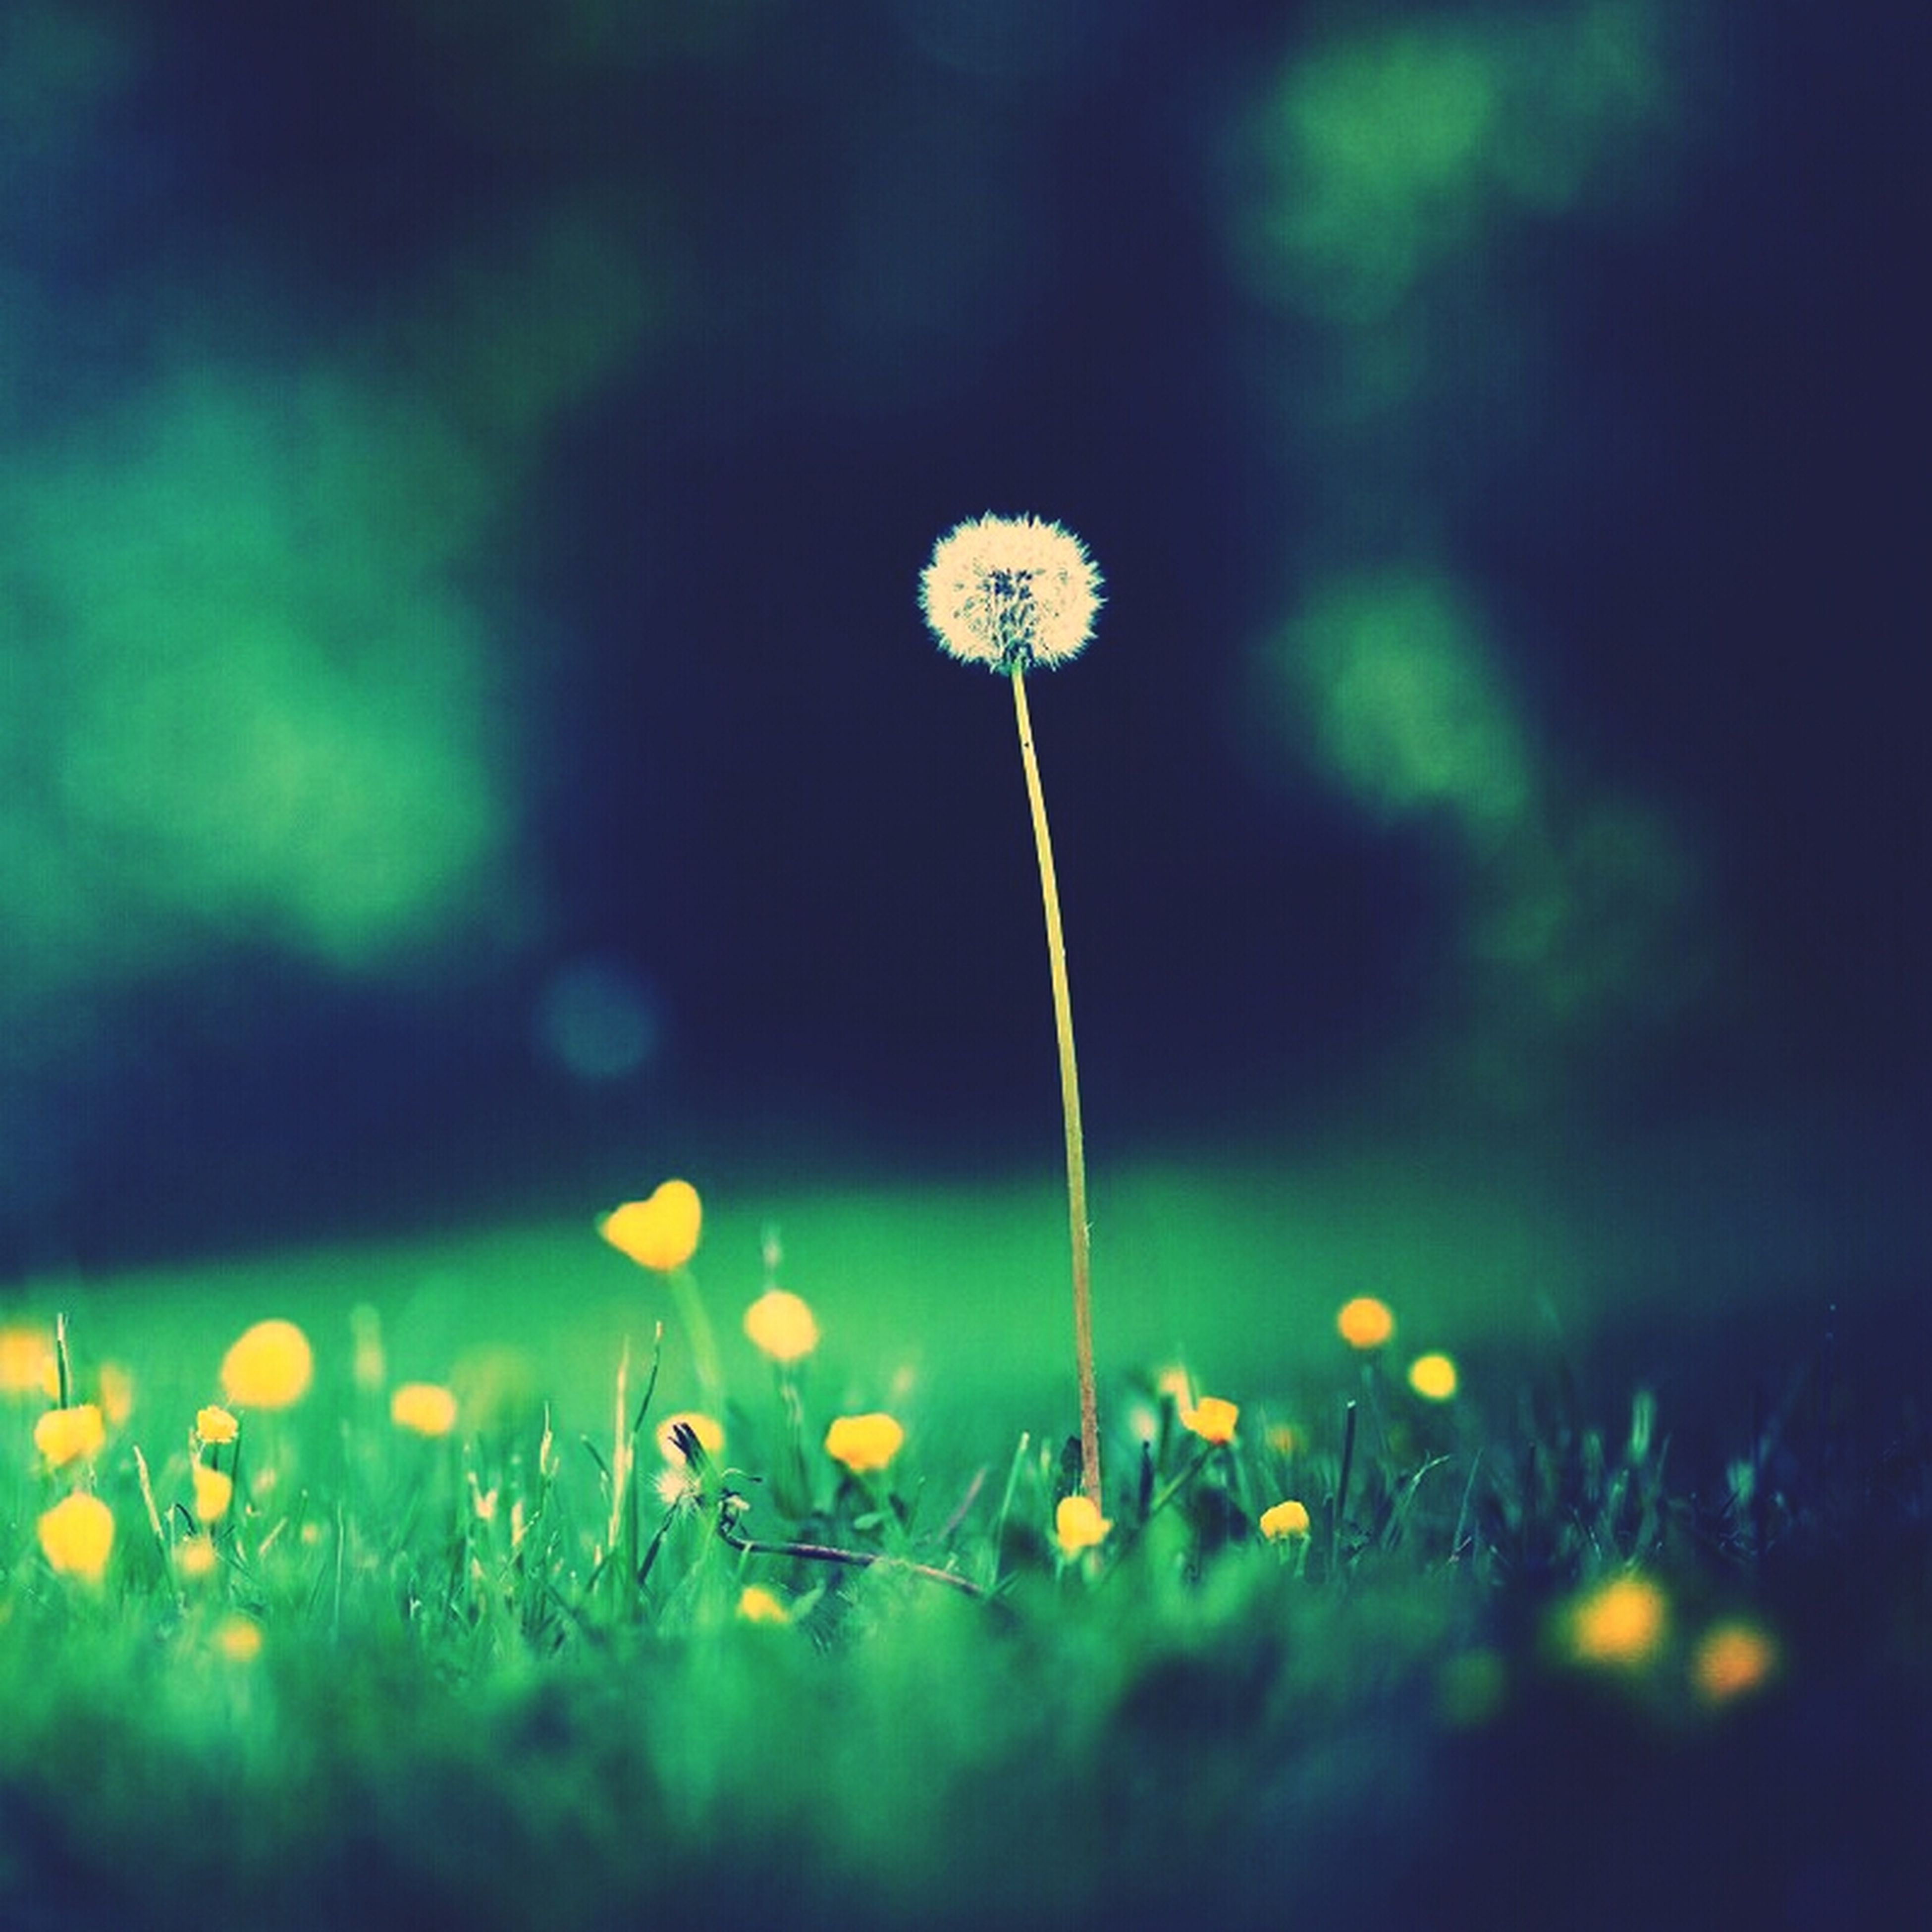 flower, fragility, freshness, growth, stem, dandelion, beauty in nature, focus on foreground, field, flower head, wildflower, plant, nature, blooming, selective focus, close-up, uncultivated, in bloom, petal, outdoors